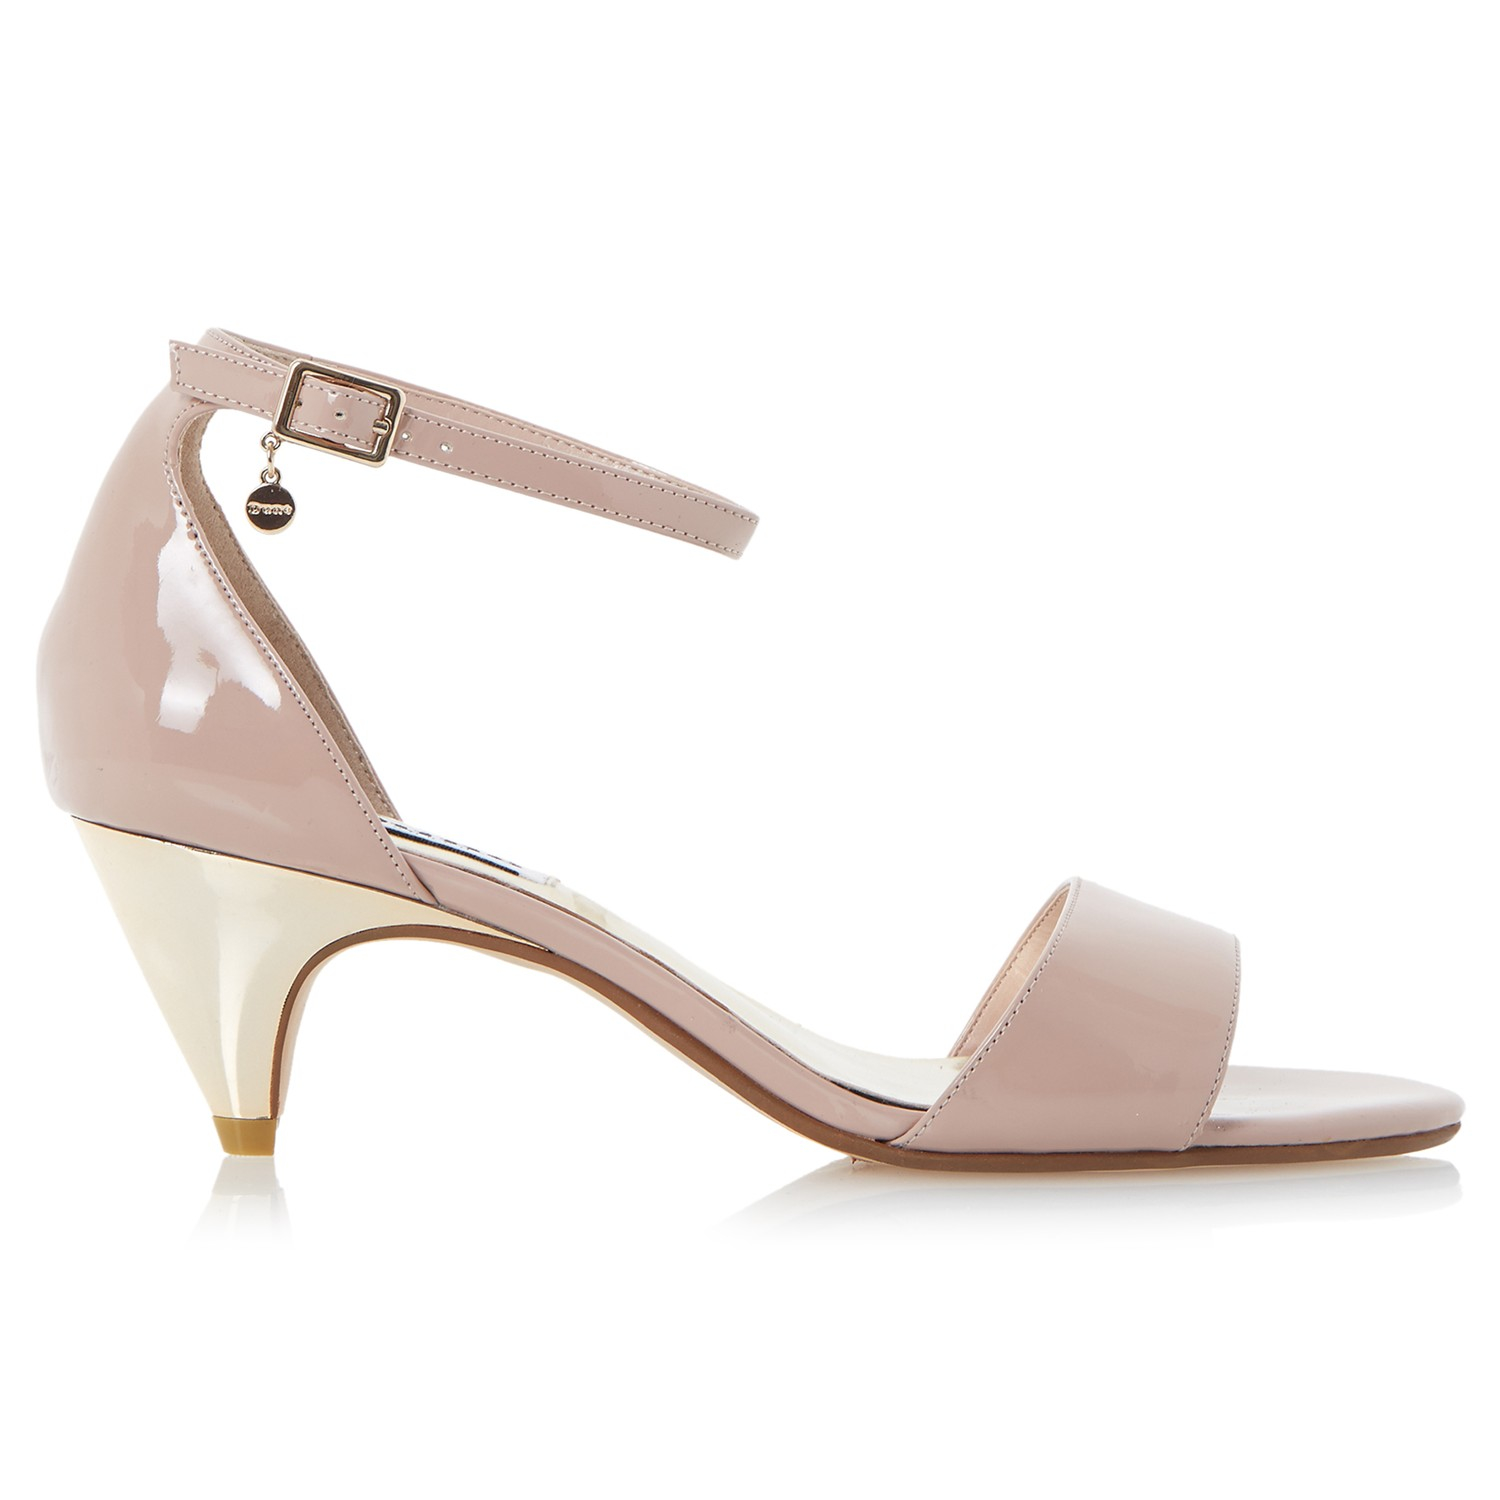 Lyst - Dune Marina Kitten Heel Two Part Sandals in Pink